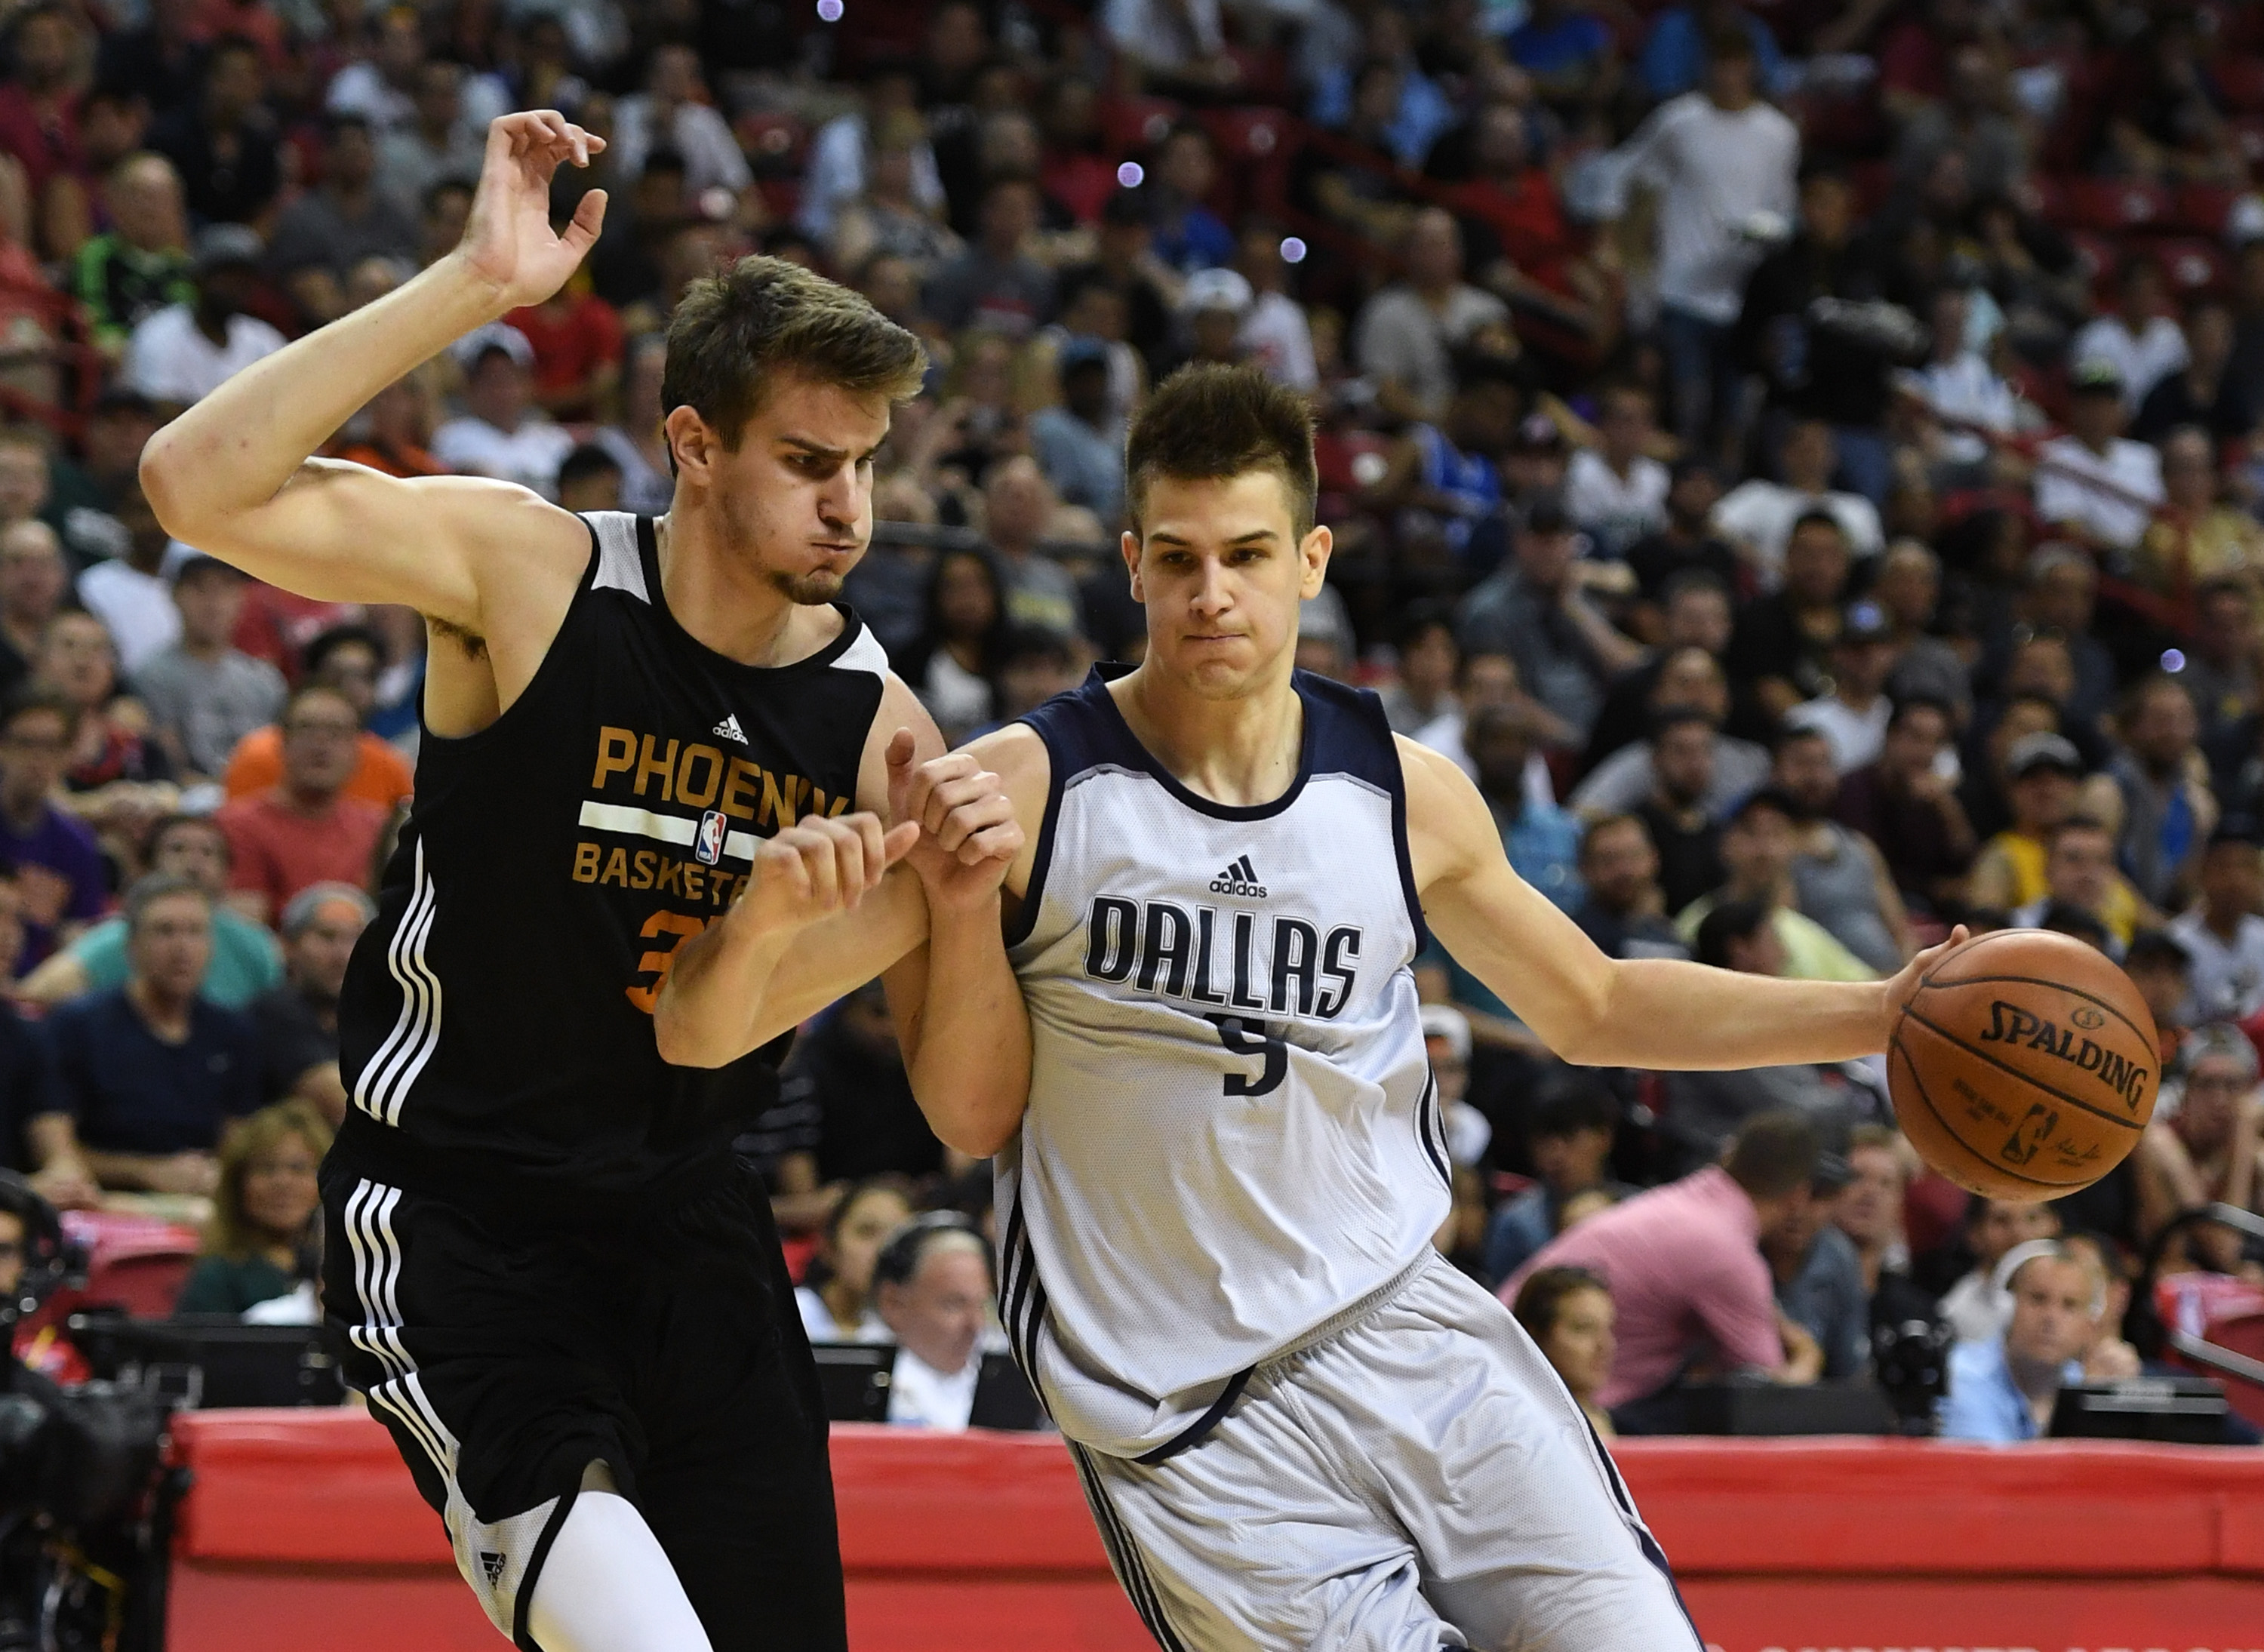 811487566-2017-las-vegas-summer-league-phoenix-suns-v-dallas-mavericks.jpg